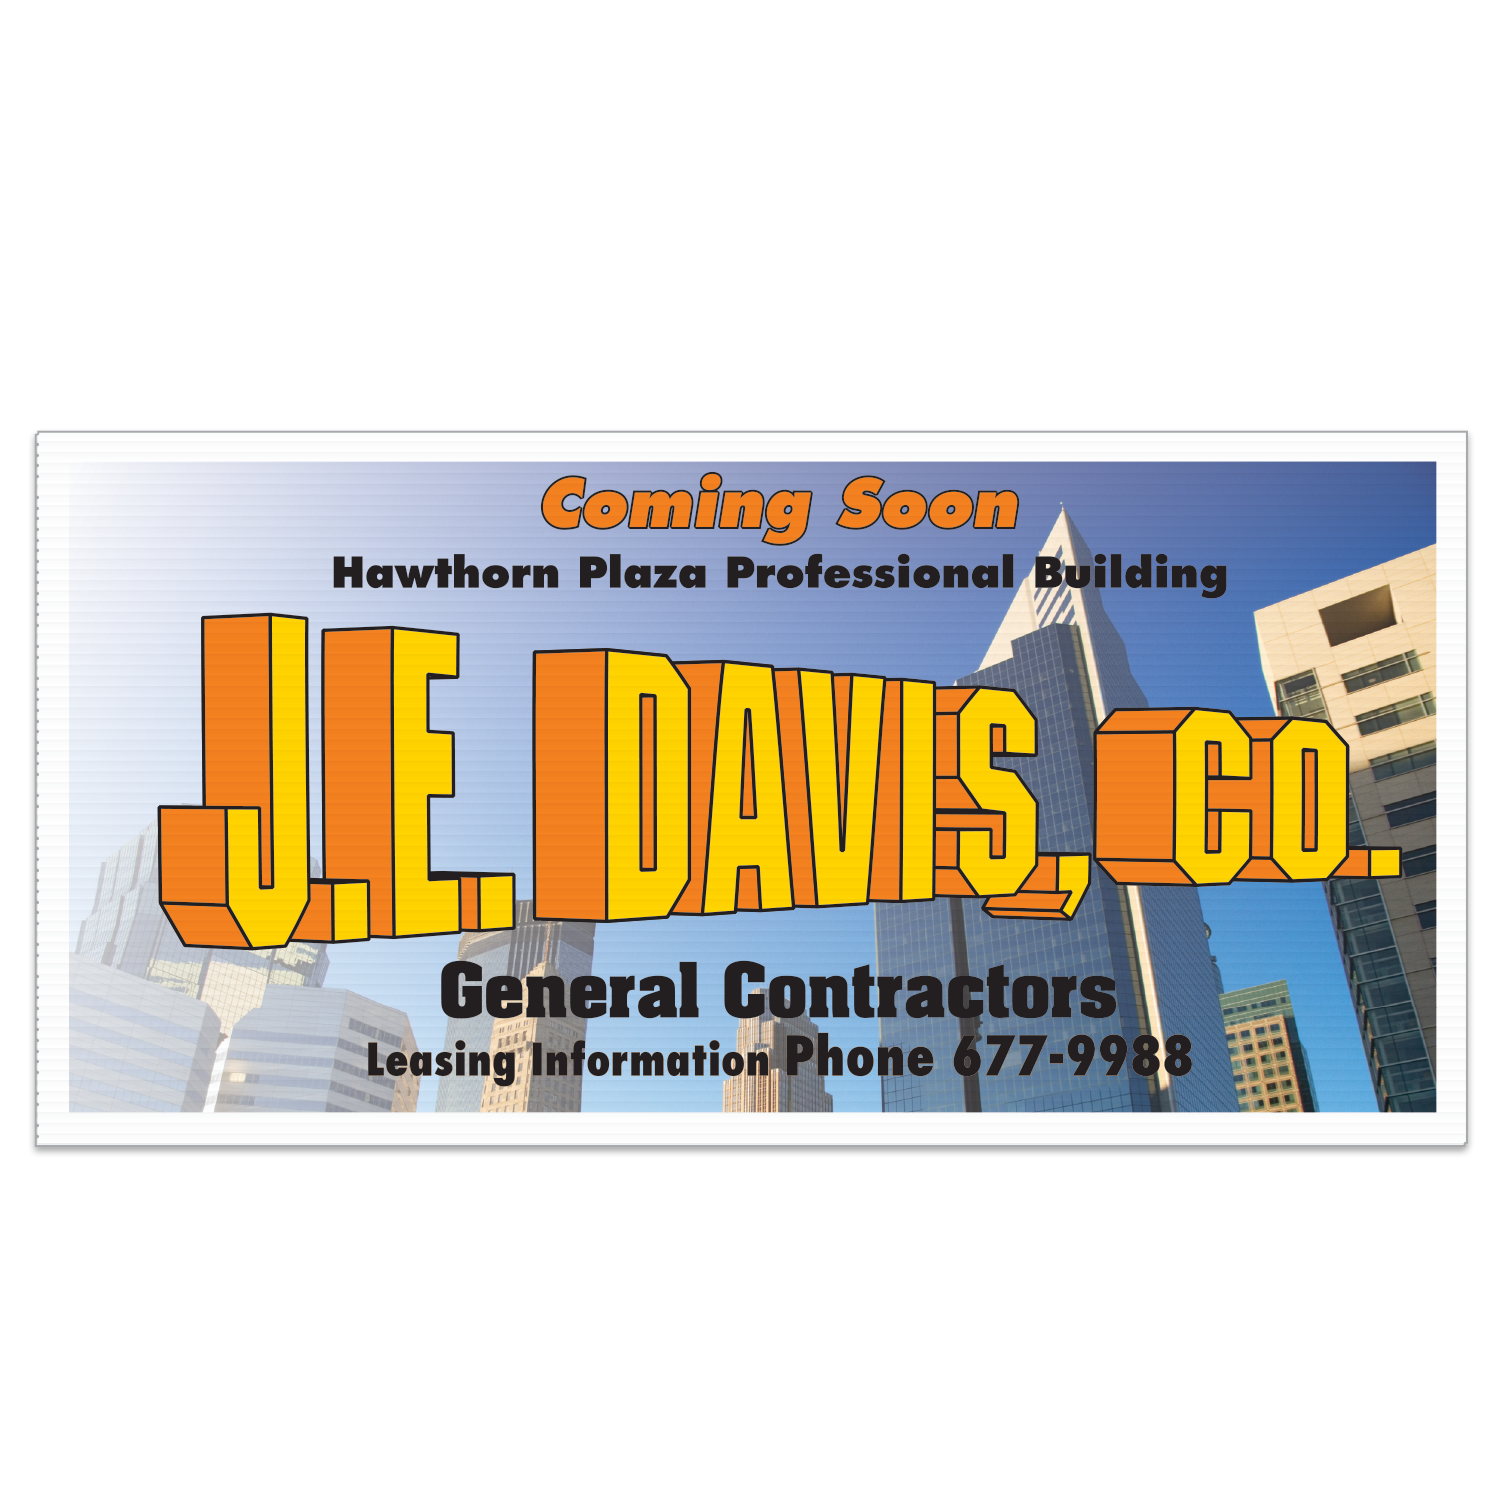 https://www.sswprinting.com/images/products_gallery_images/17741_J-E-Davis-Contractors_hi-res.png